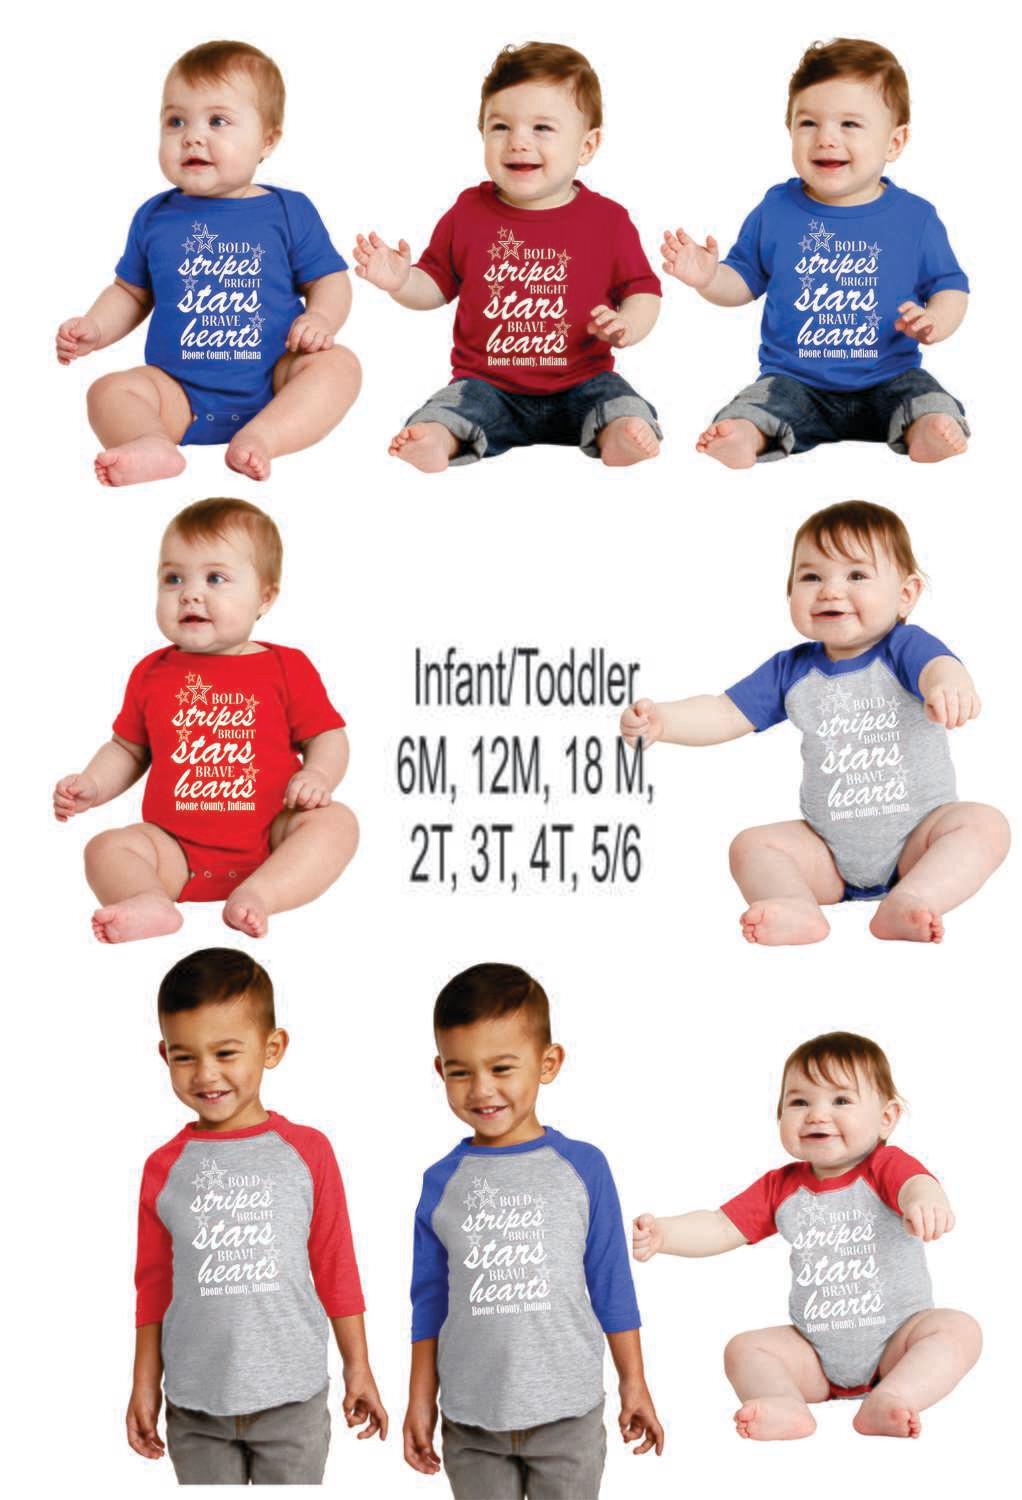 Infant/Toddler 4th of July - Boone County